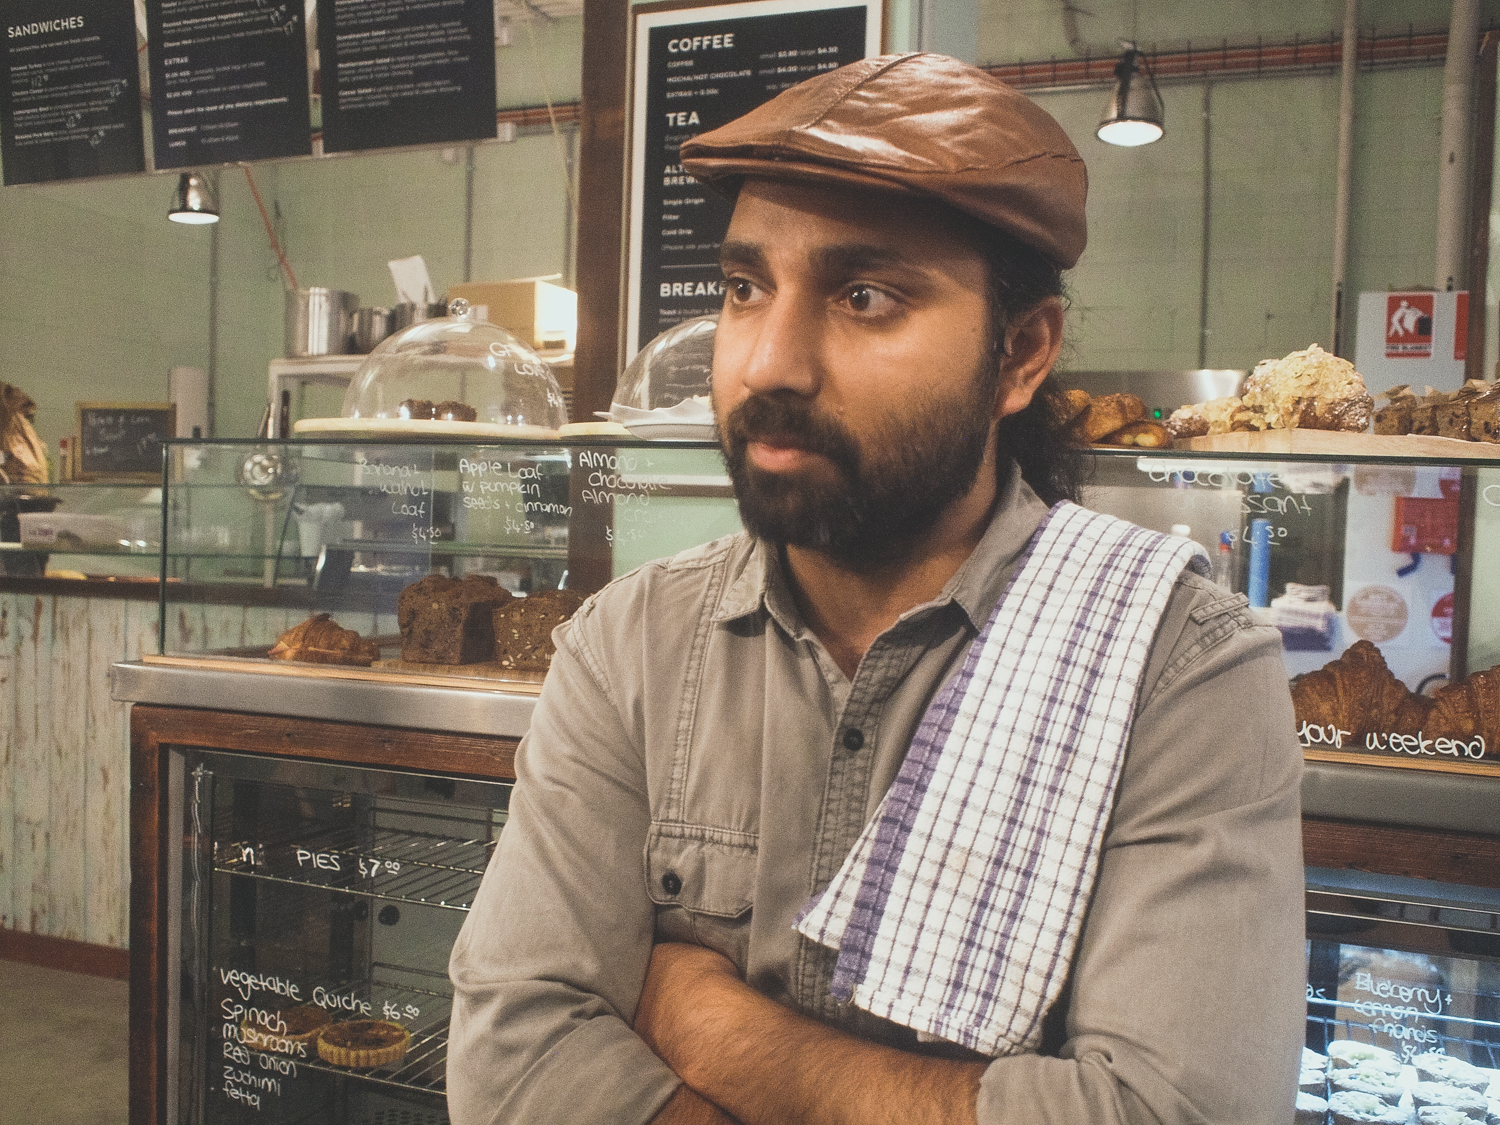 handsome-and-the-duchess-syed-haider-famished-fridays-interview.jpg